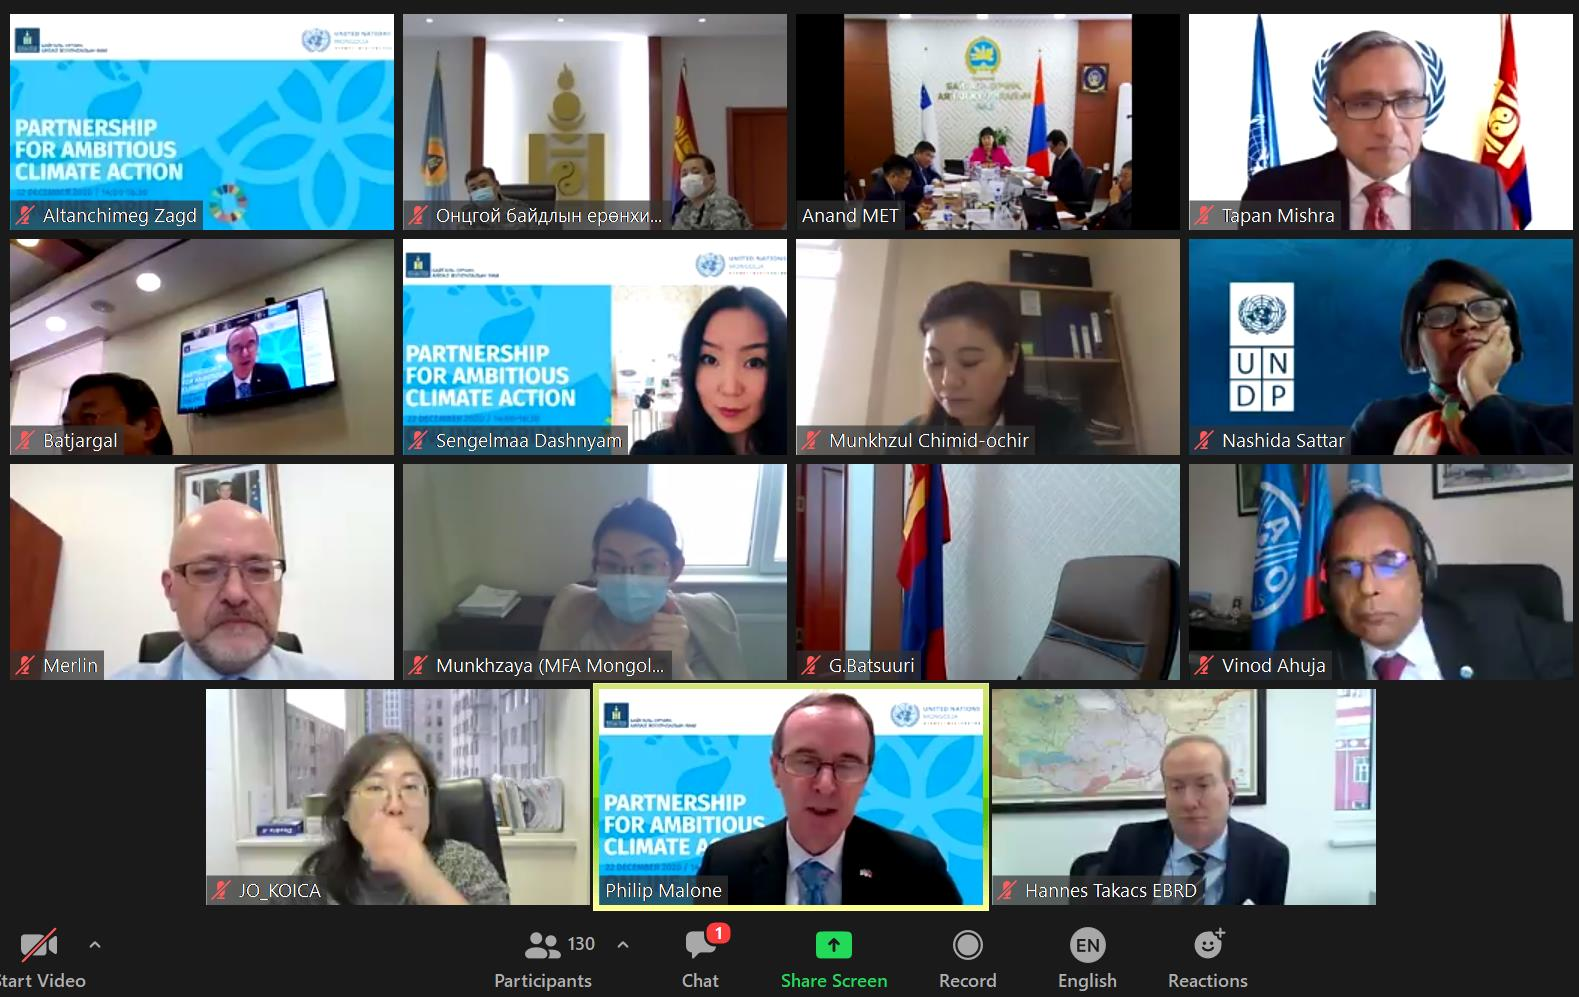 Partnership for Ambitious Climate Action Online Forum, 22 December 2020